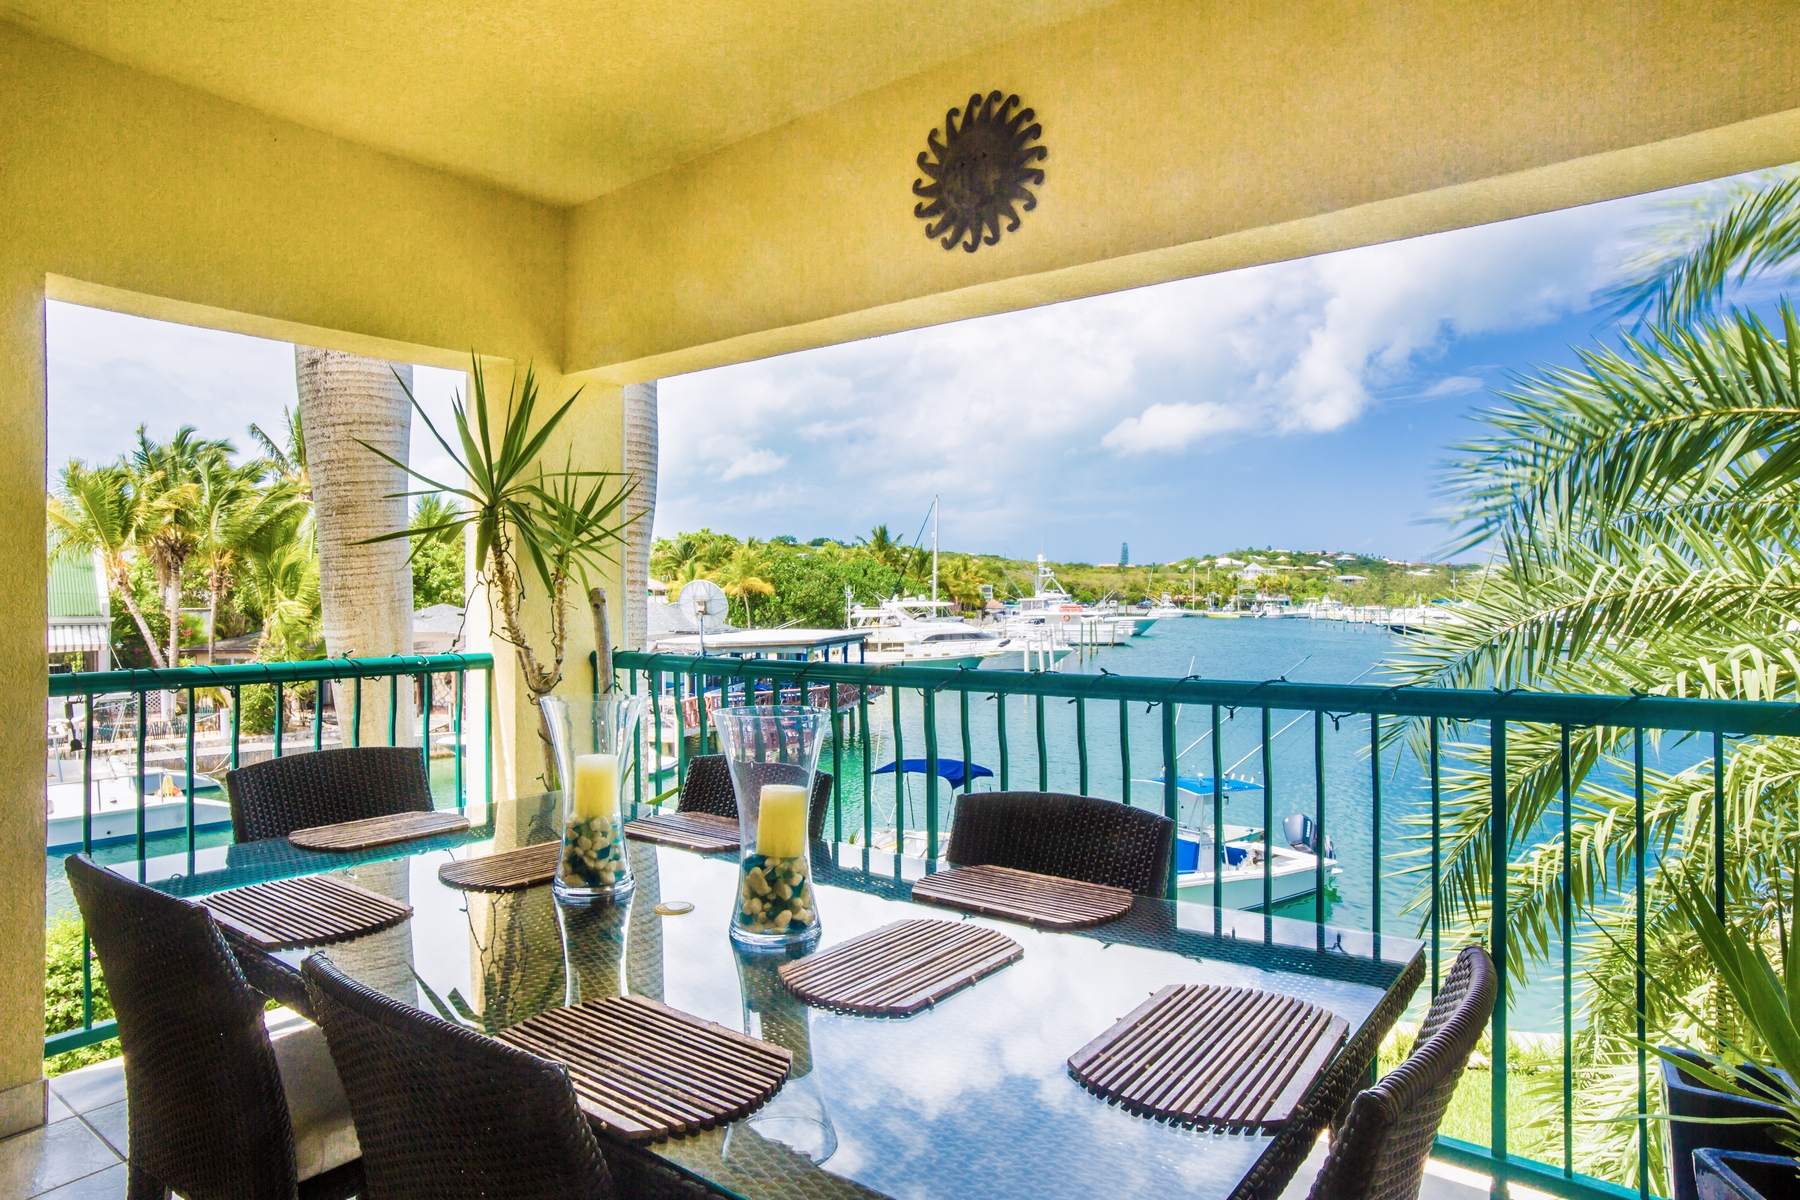 Condominium for Sale at The Yacht Club - B1 Turtle Cove, Providenciales, TCI BWI Turks And Caicos Islands